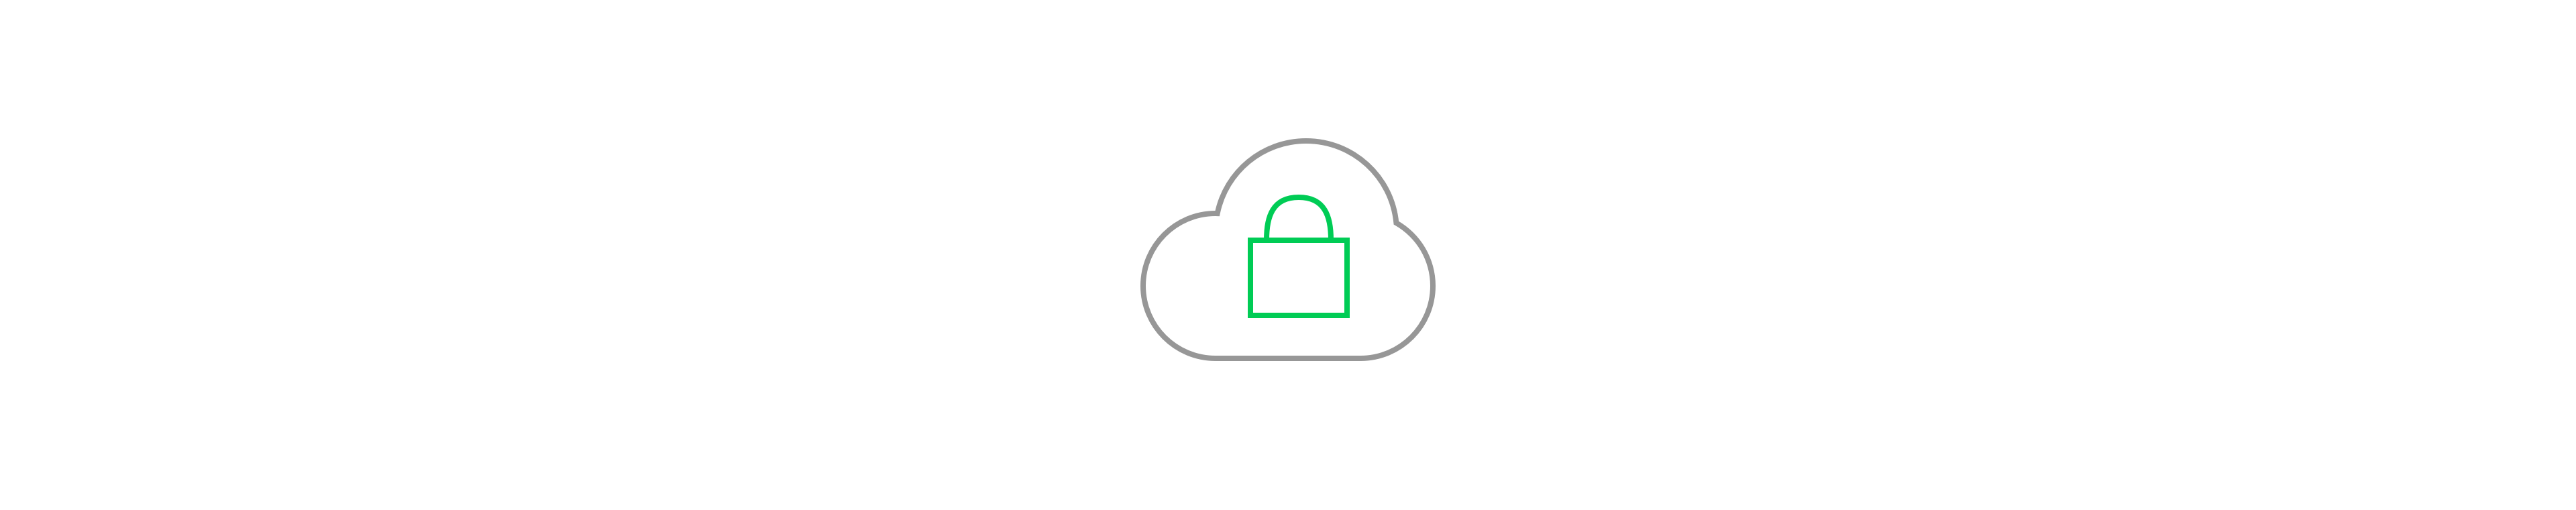 End-to-end encrypted data in the cloud is not threatened by Meltdown and Spectre